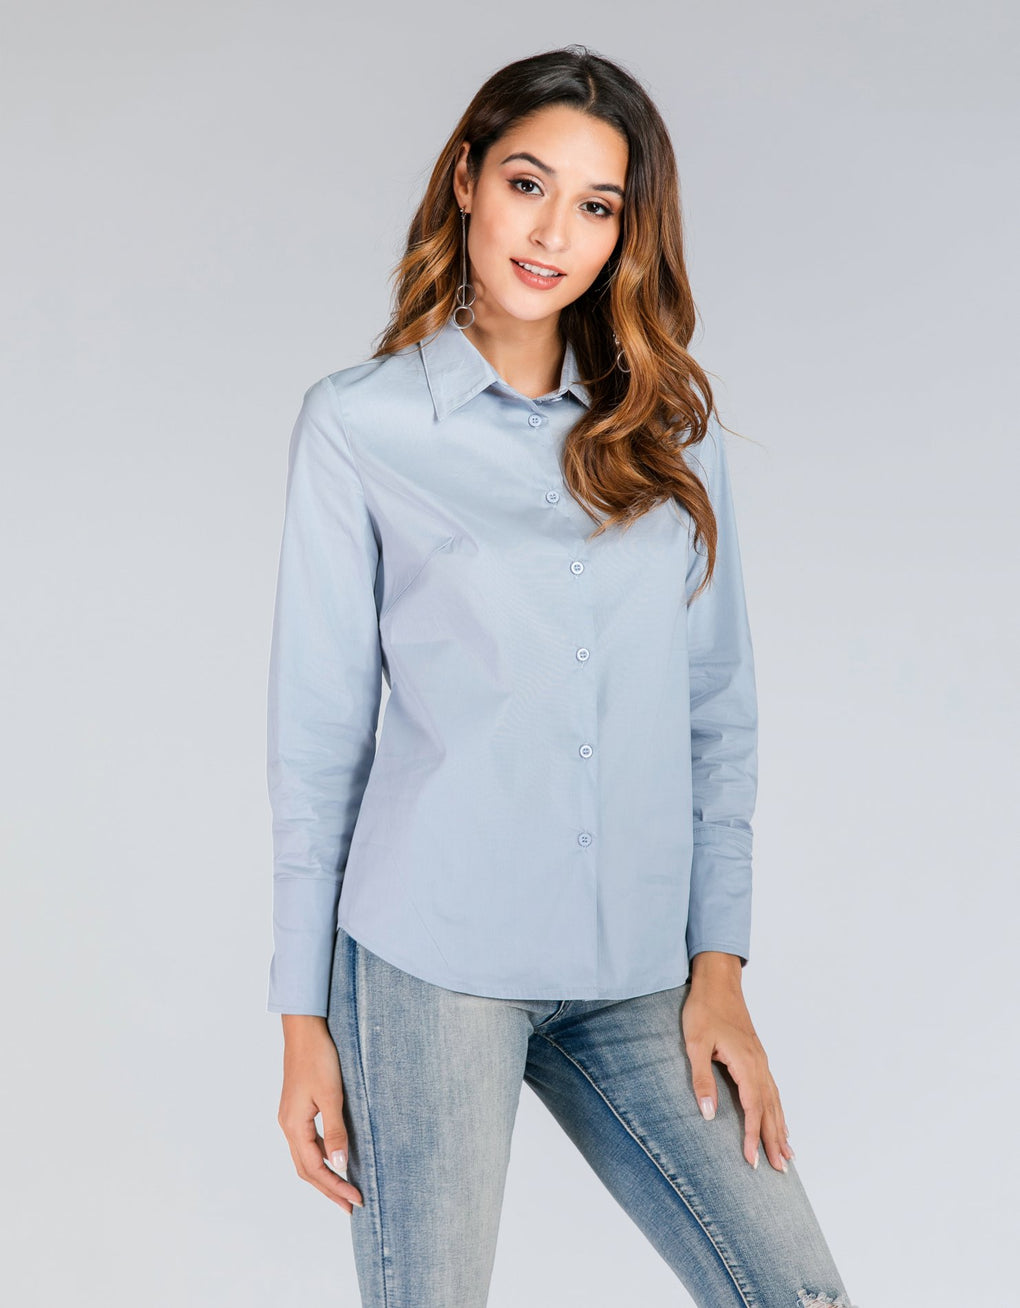 Long Sleeve Collared Shirt